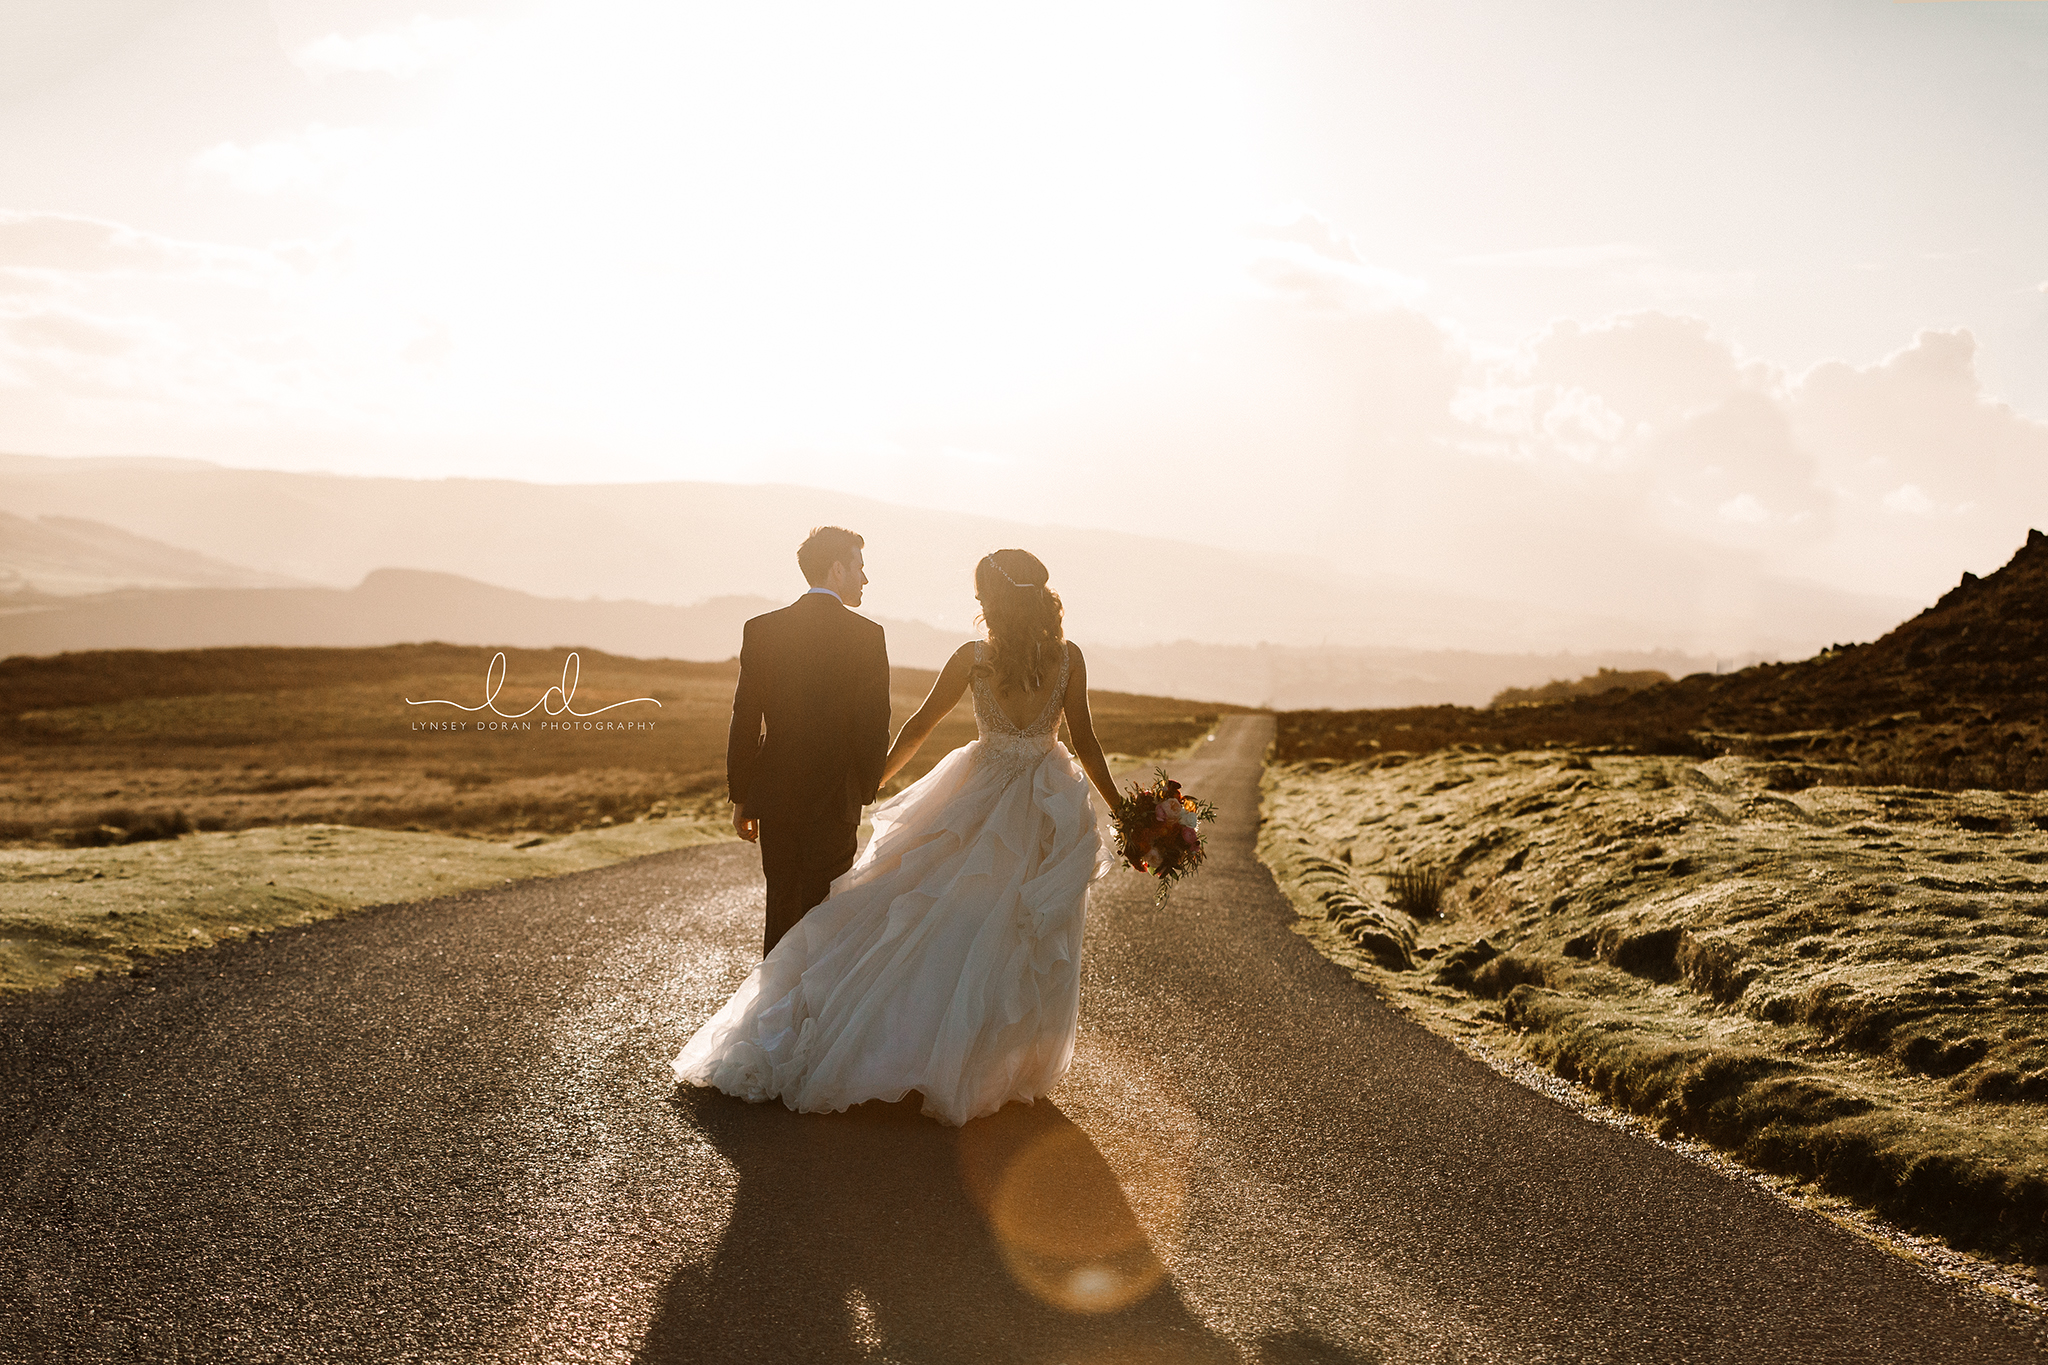 Dreamy Whimsical wedding photography